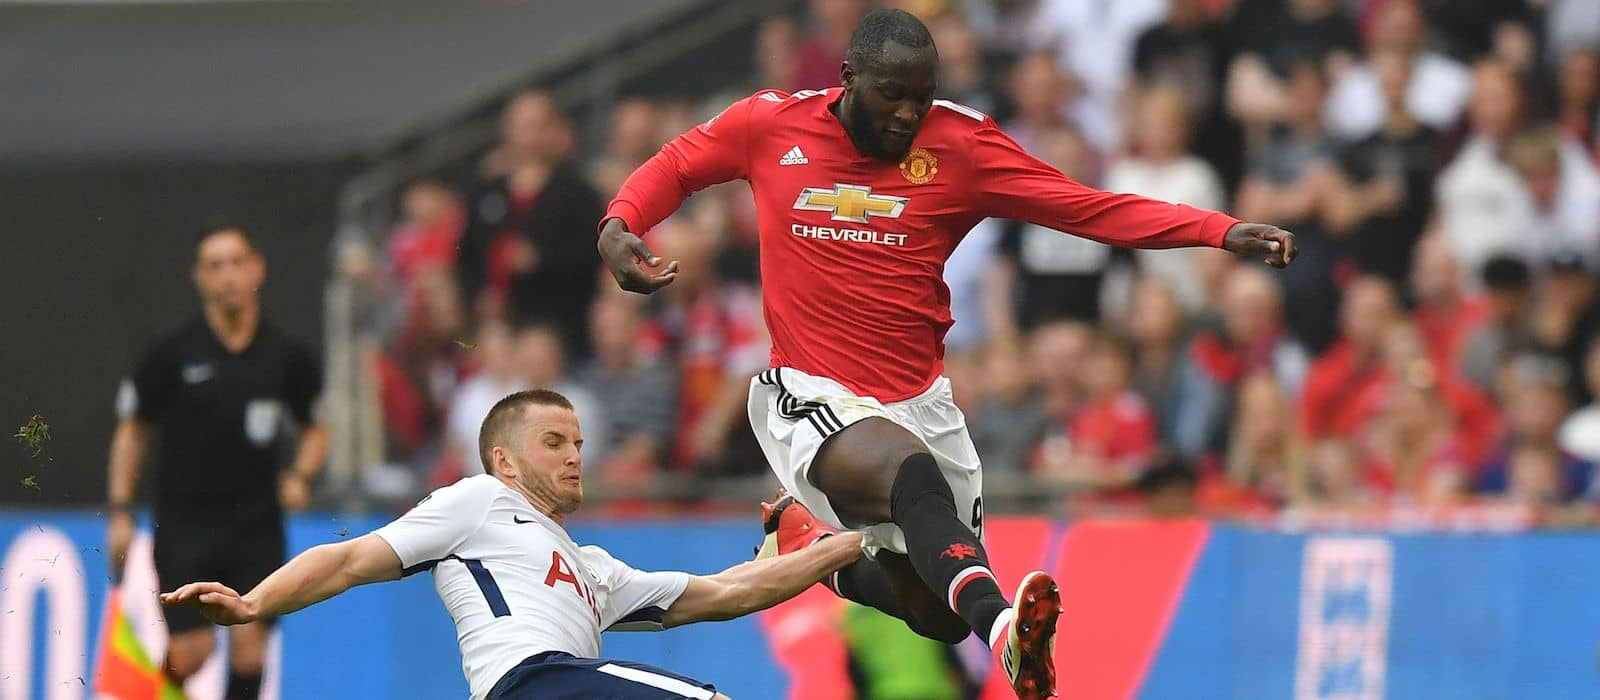 Romelu Lukaku keen on Inter Milan despite interest from elsewhere